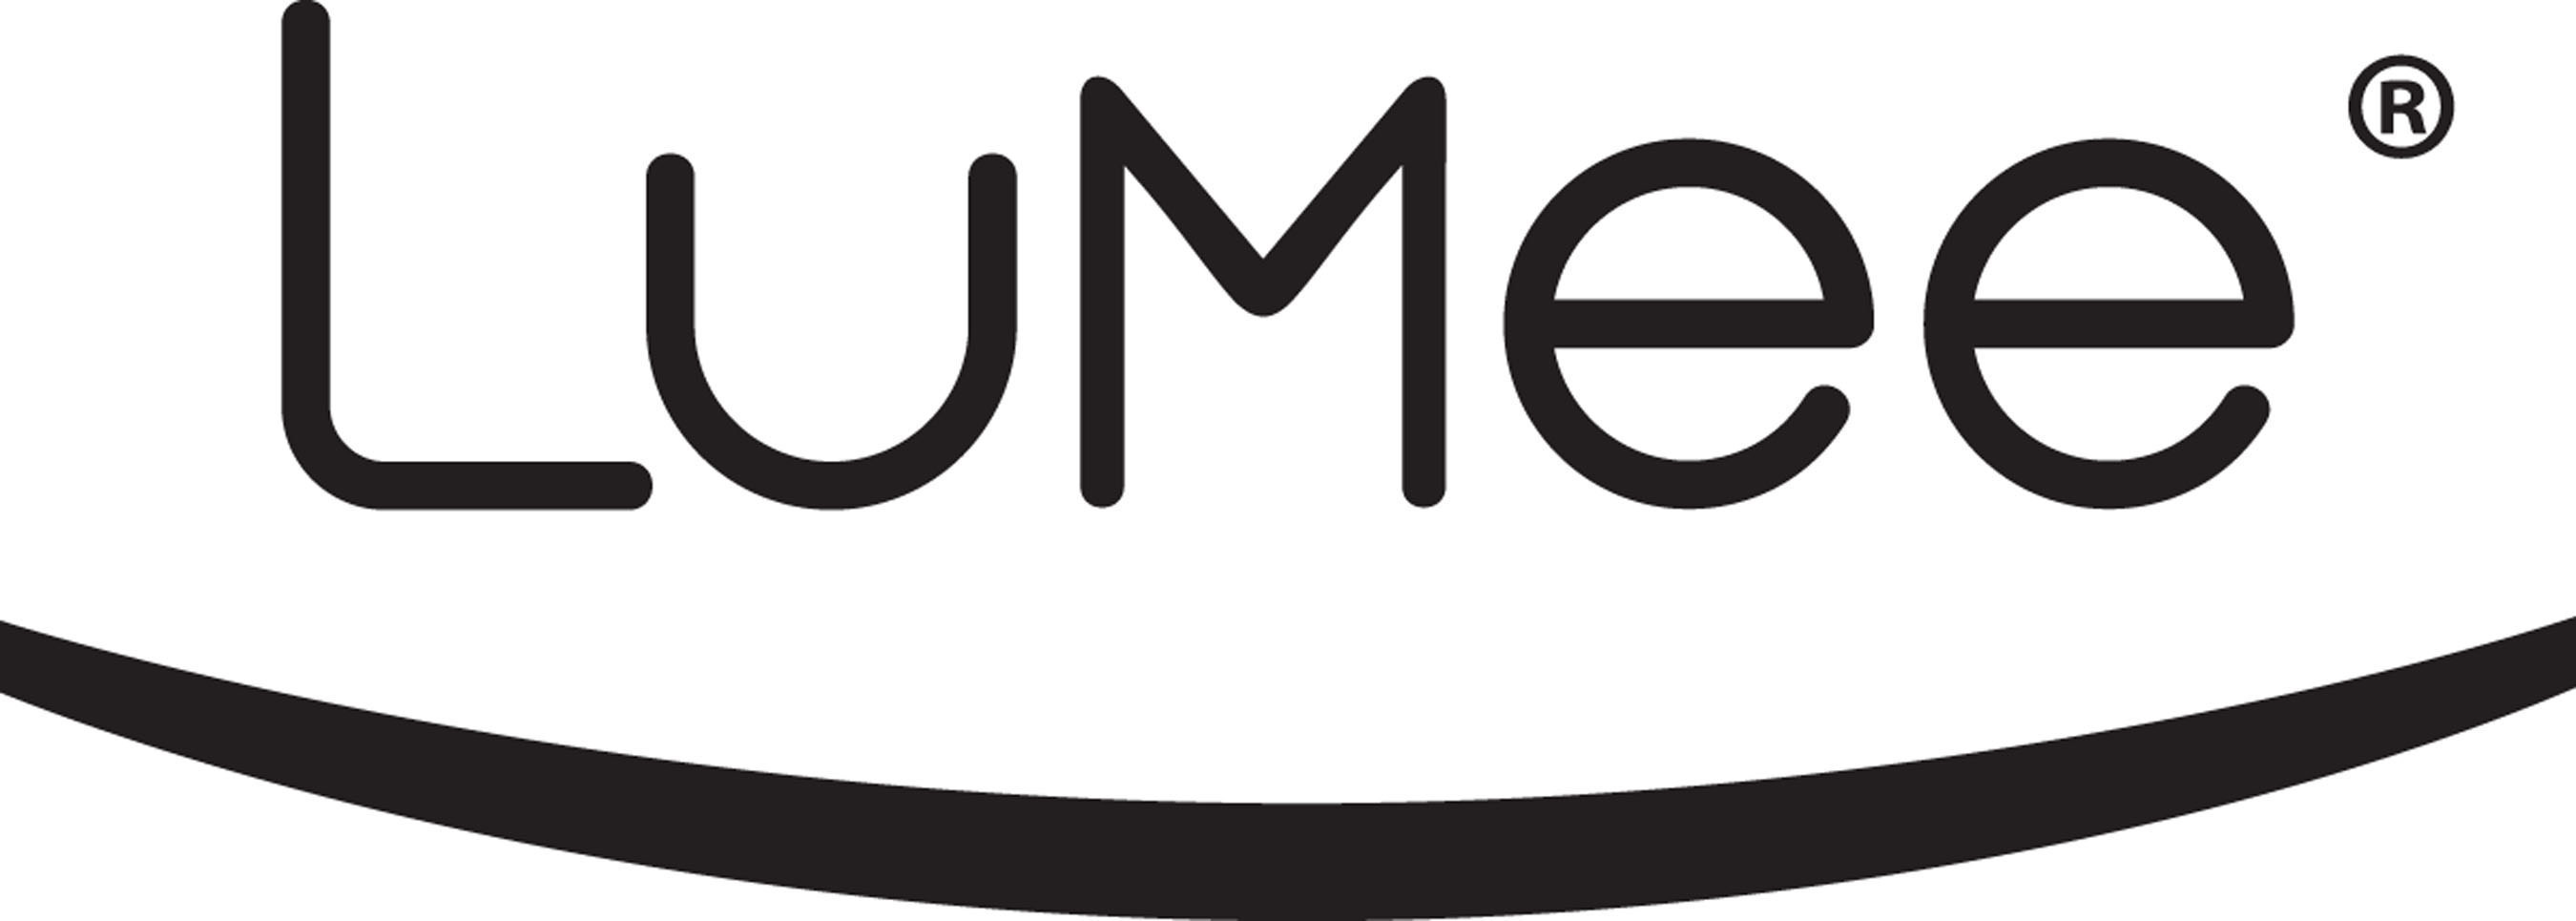 LuMee Engages International Enforcement of its Intellectual Property and Trademarks